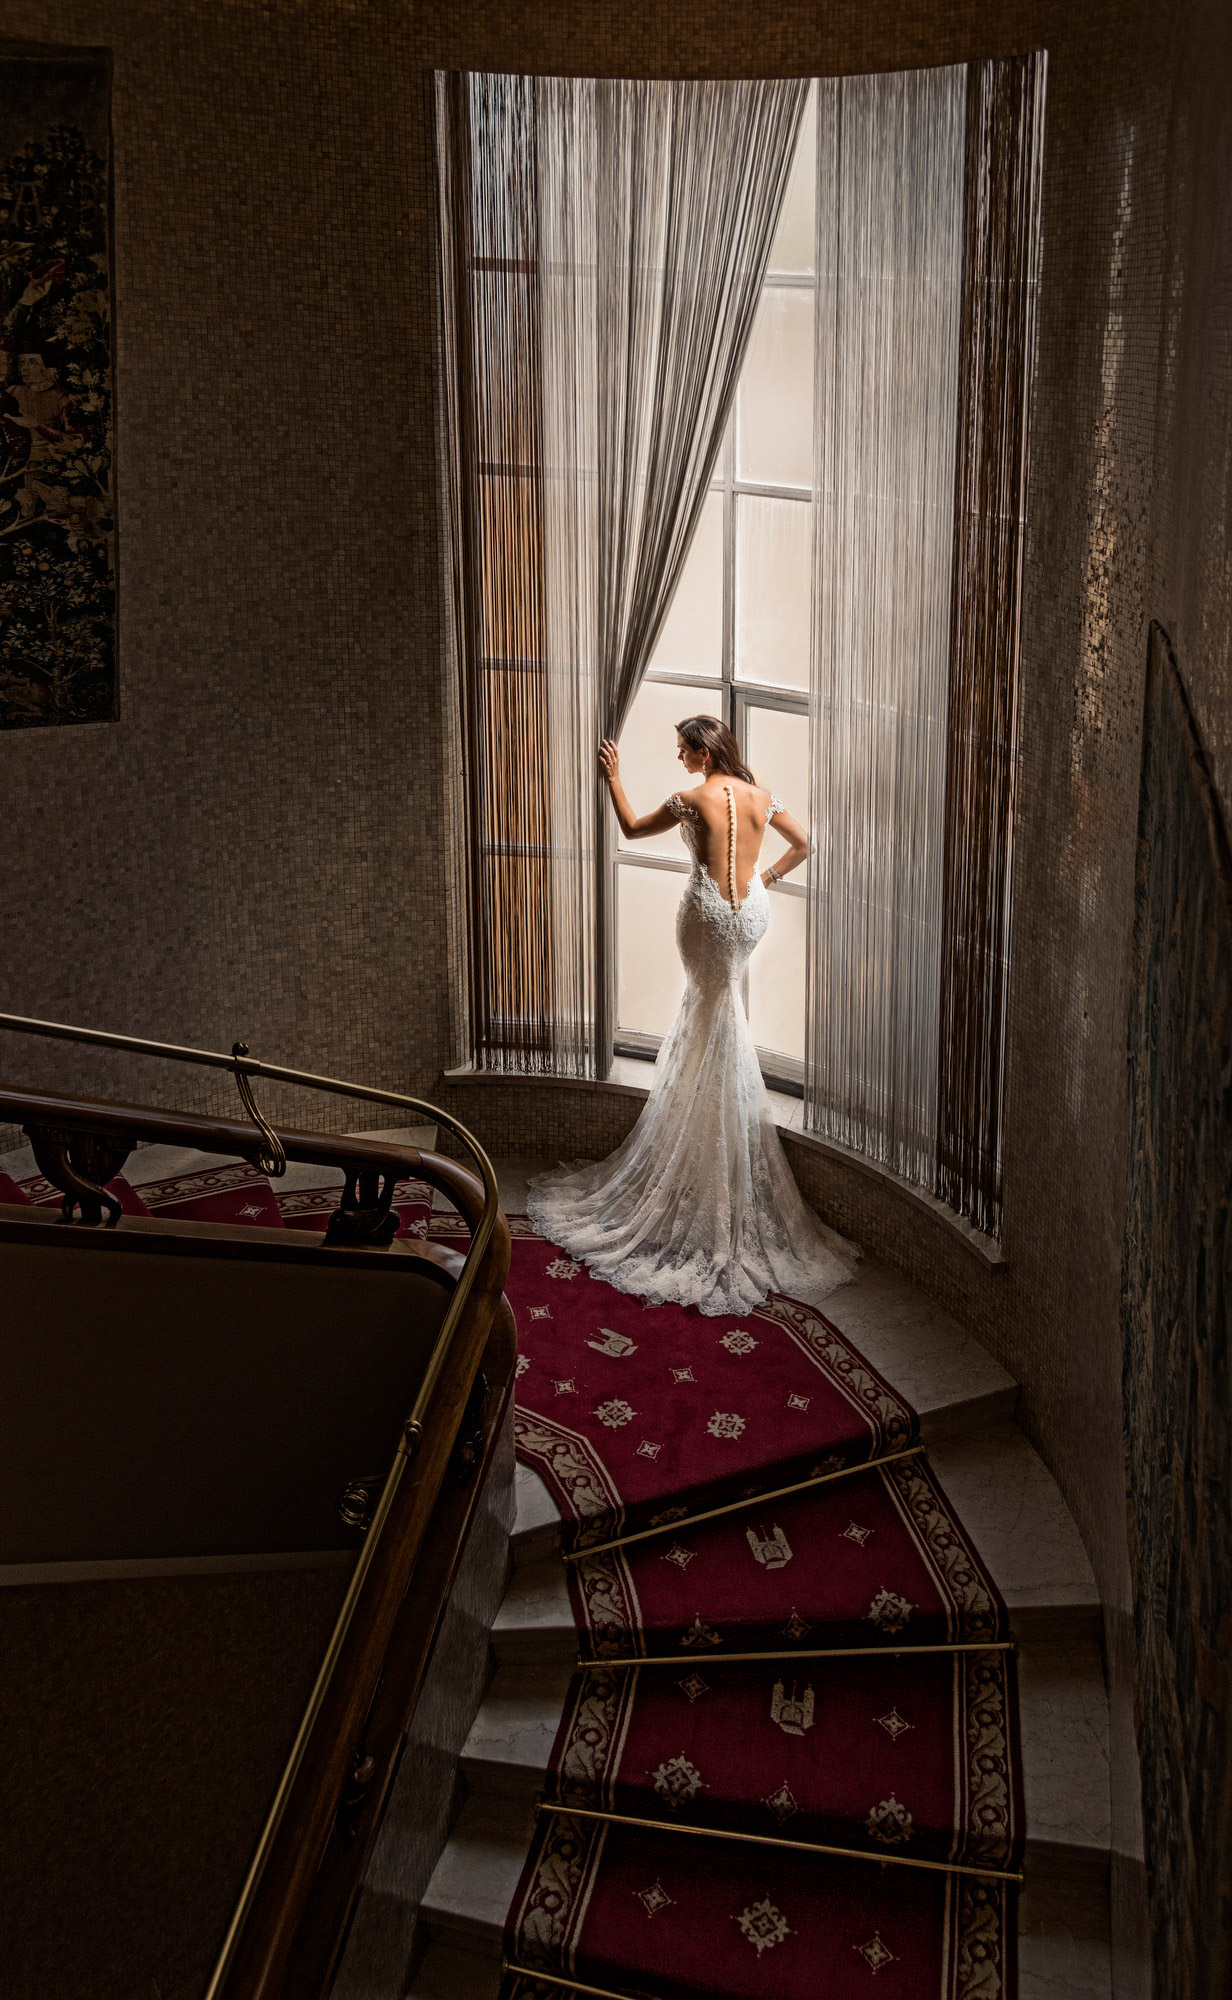 Bride in trumpet dress with sheer back in window - photo by Jerry Ghionis